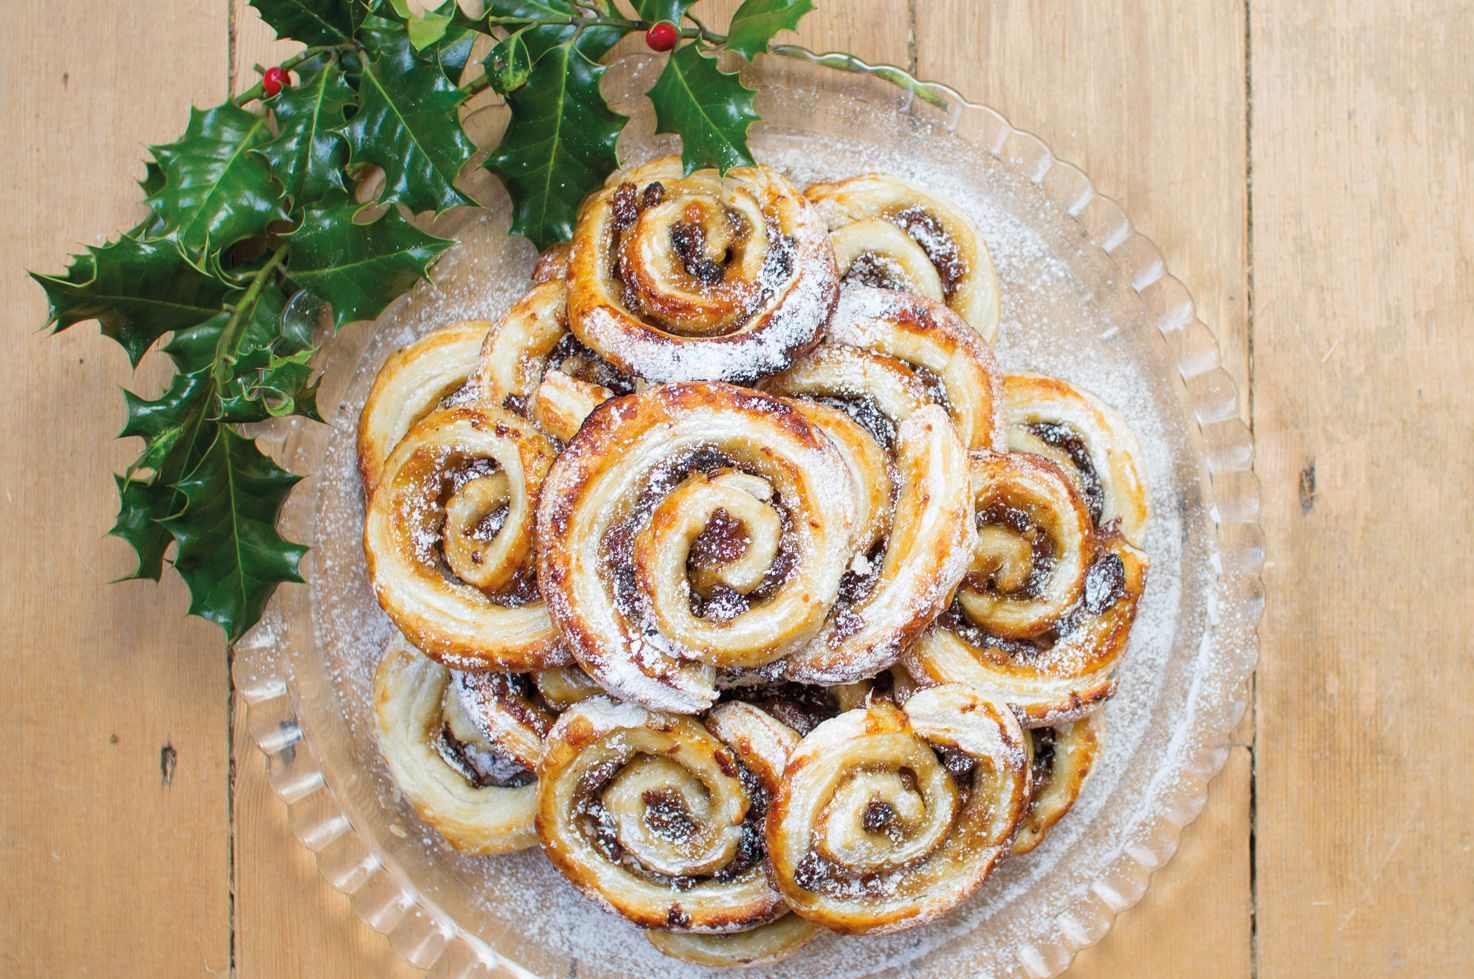 Salad Christmas recipe: a twist on the traditional mince pie